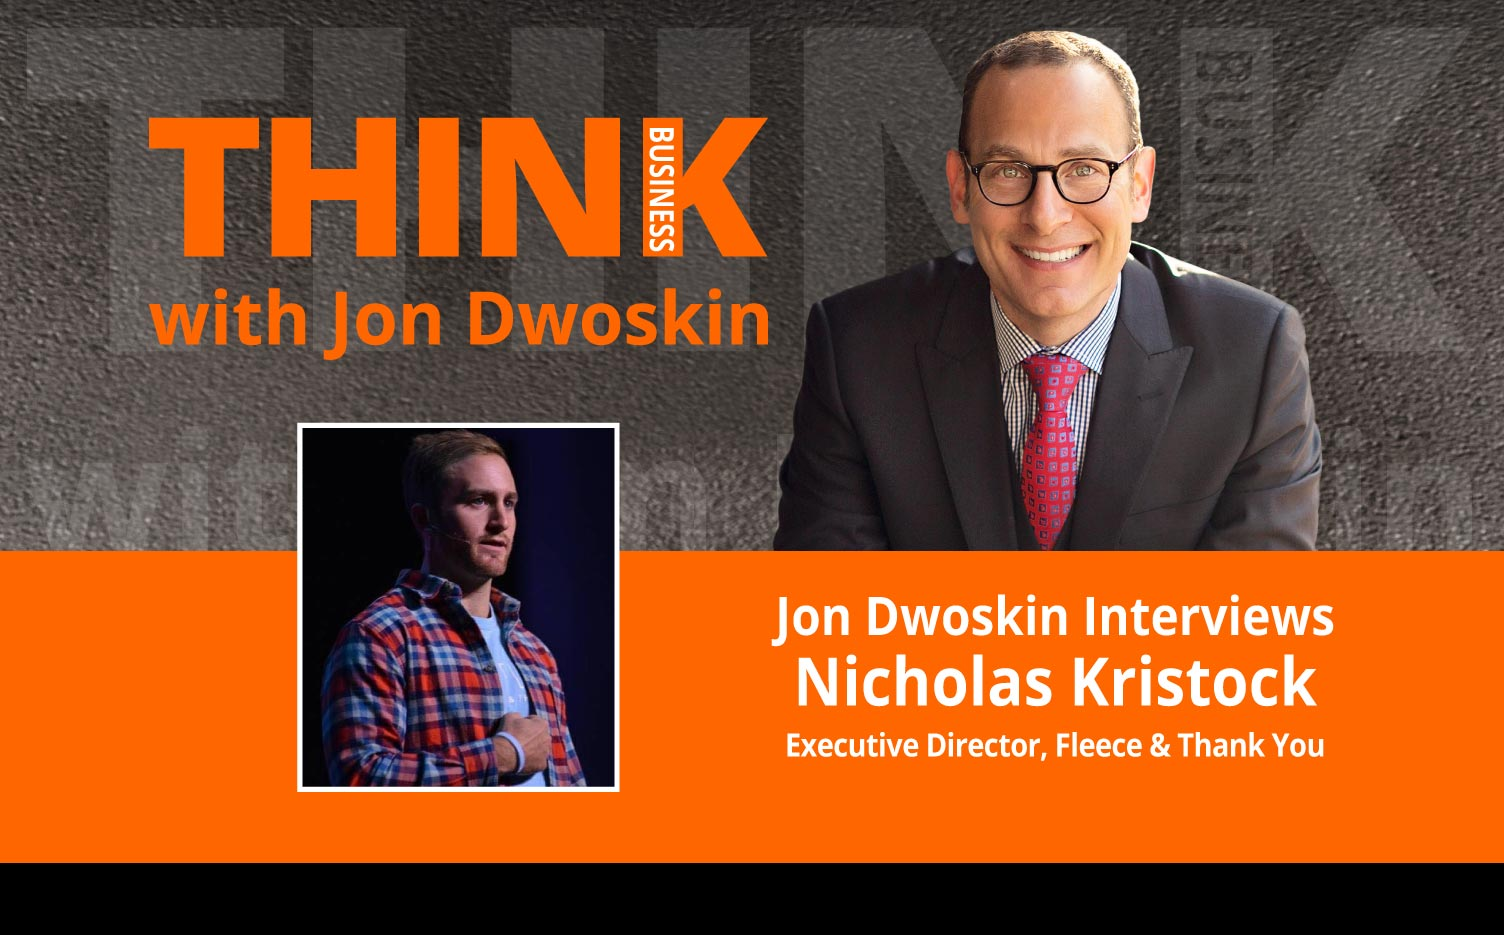 THINK Business-Podcast-Jon Dwoskin interviews Nicholas-Kristock